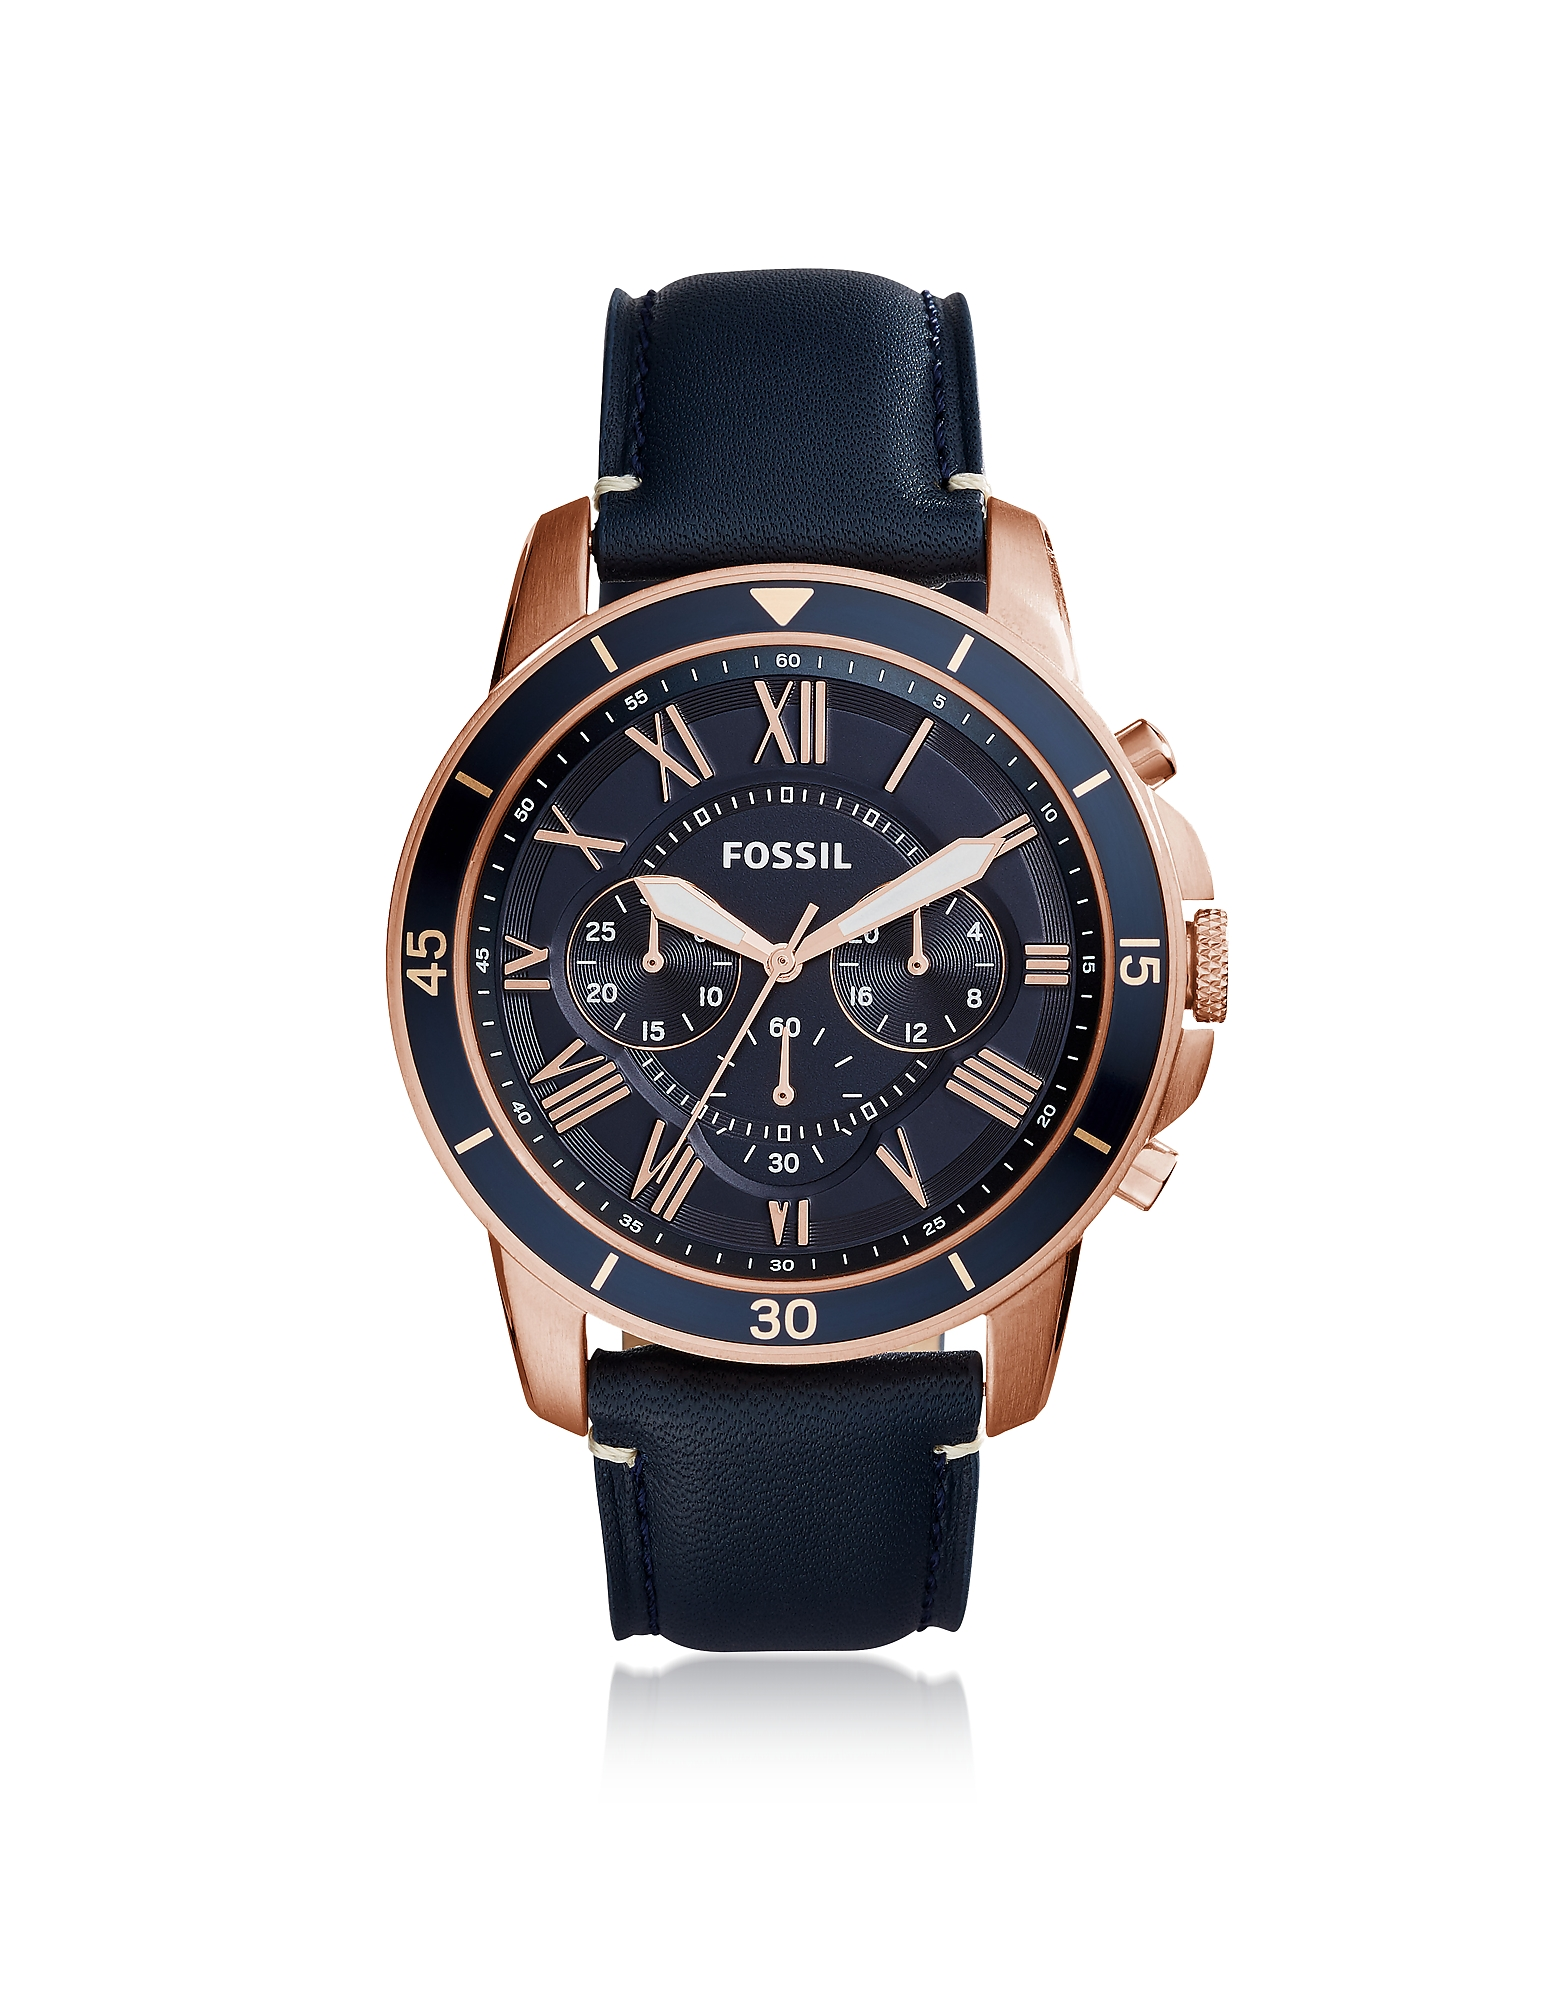 Fossil Men's Watches, Grant Sport Chronograph Blue Leather Men's Watch